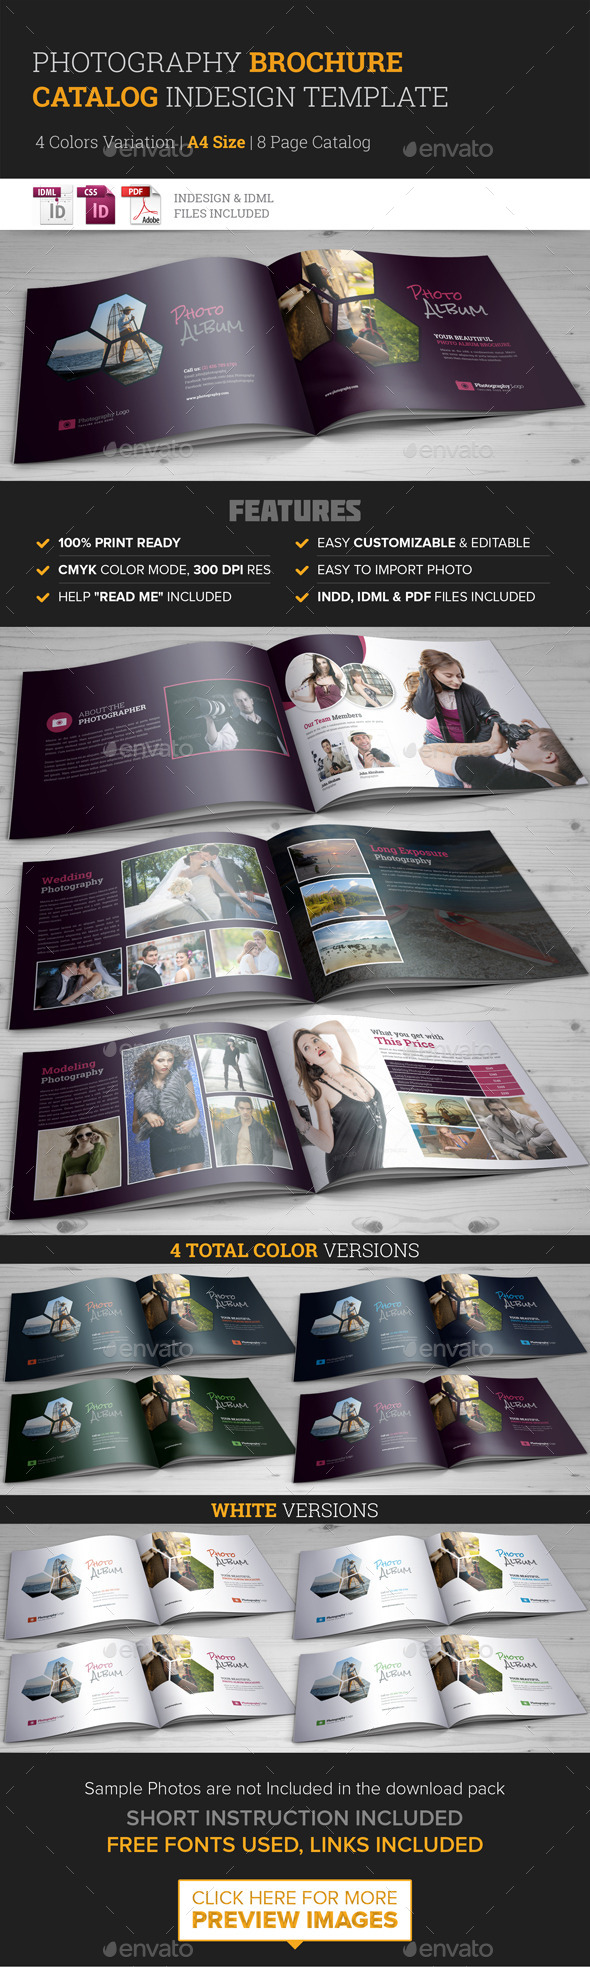 Photography Brochure Catalog InDesign Template | Libros